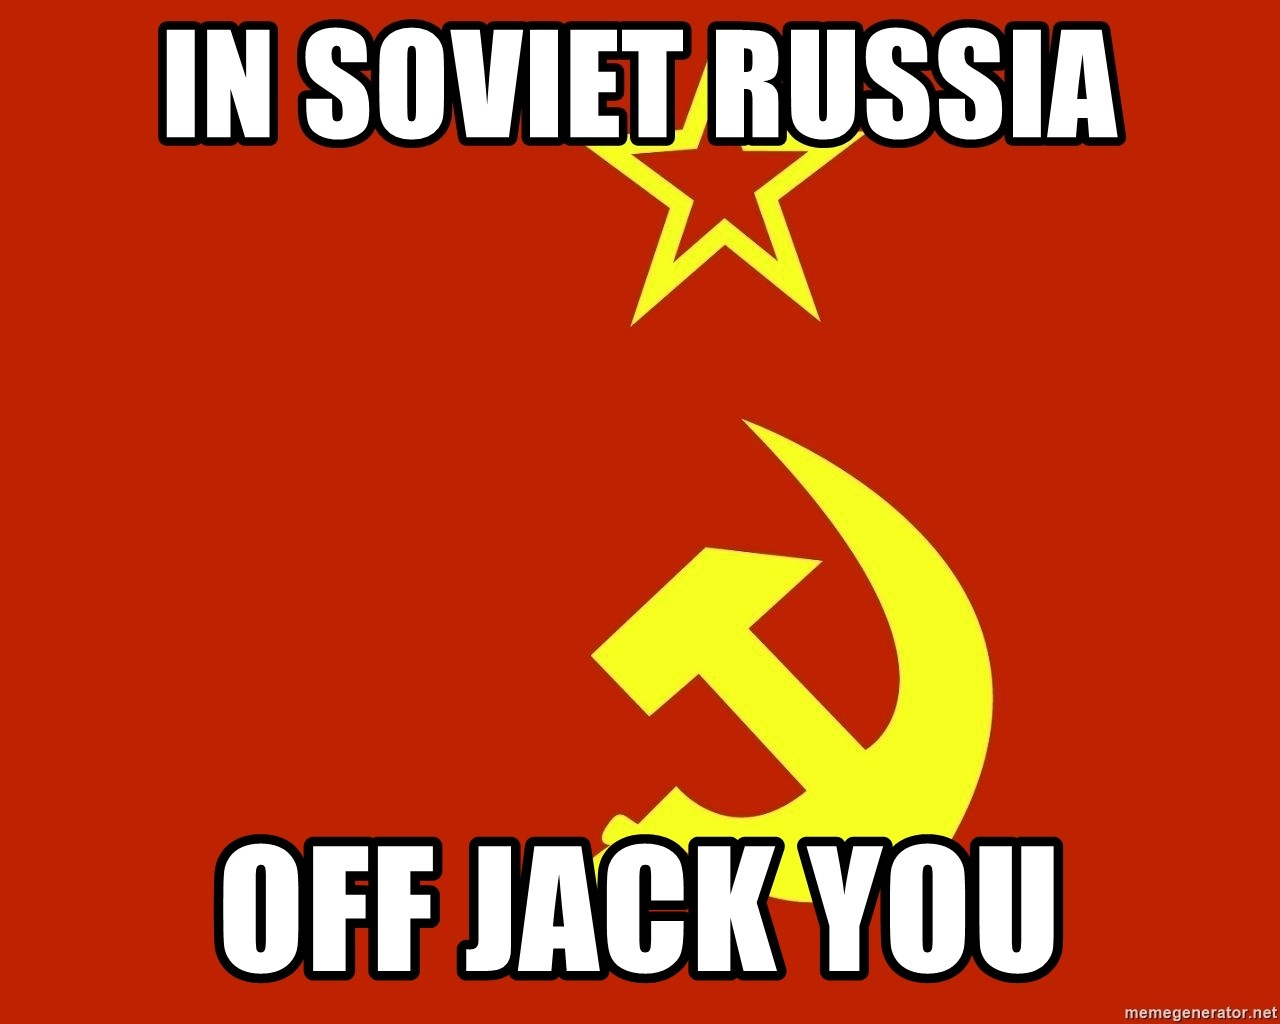 In Soviet Russia - iN SOVIET RUSSIA oFF JACK YOU